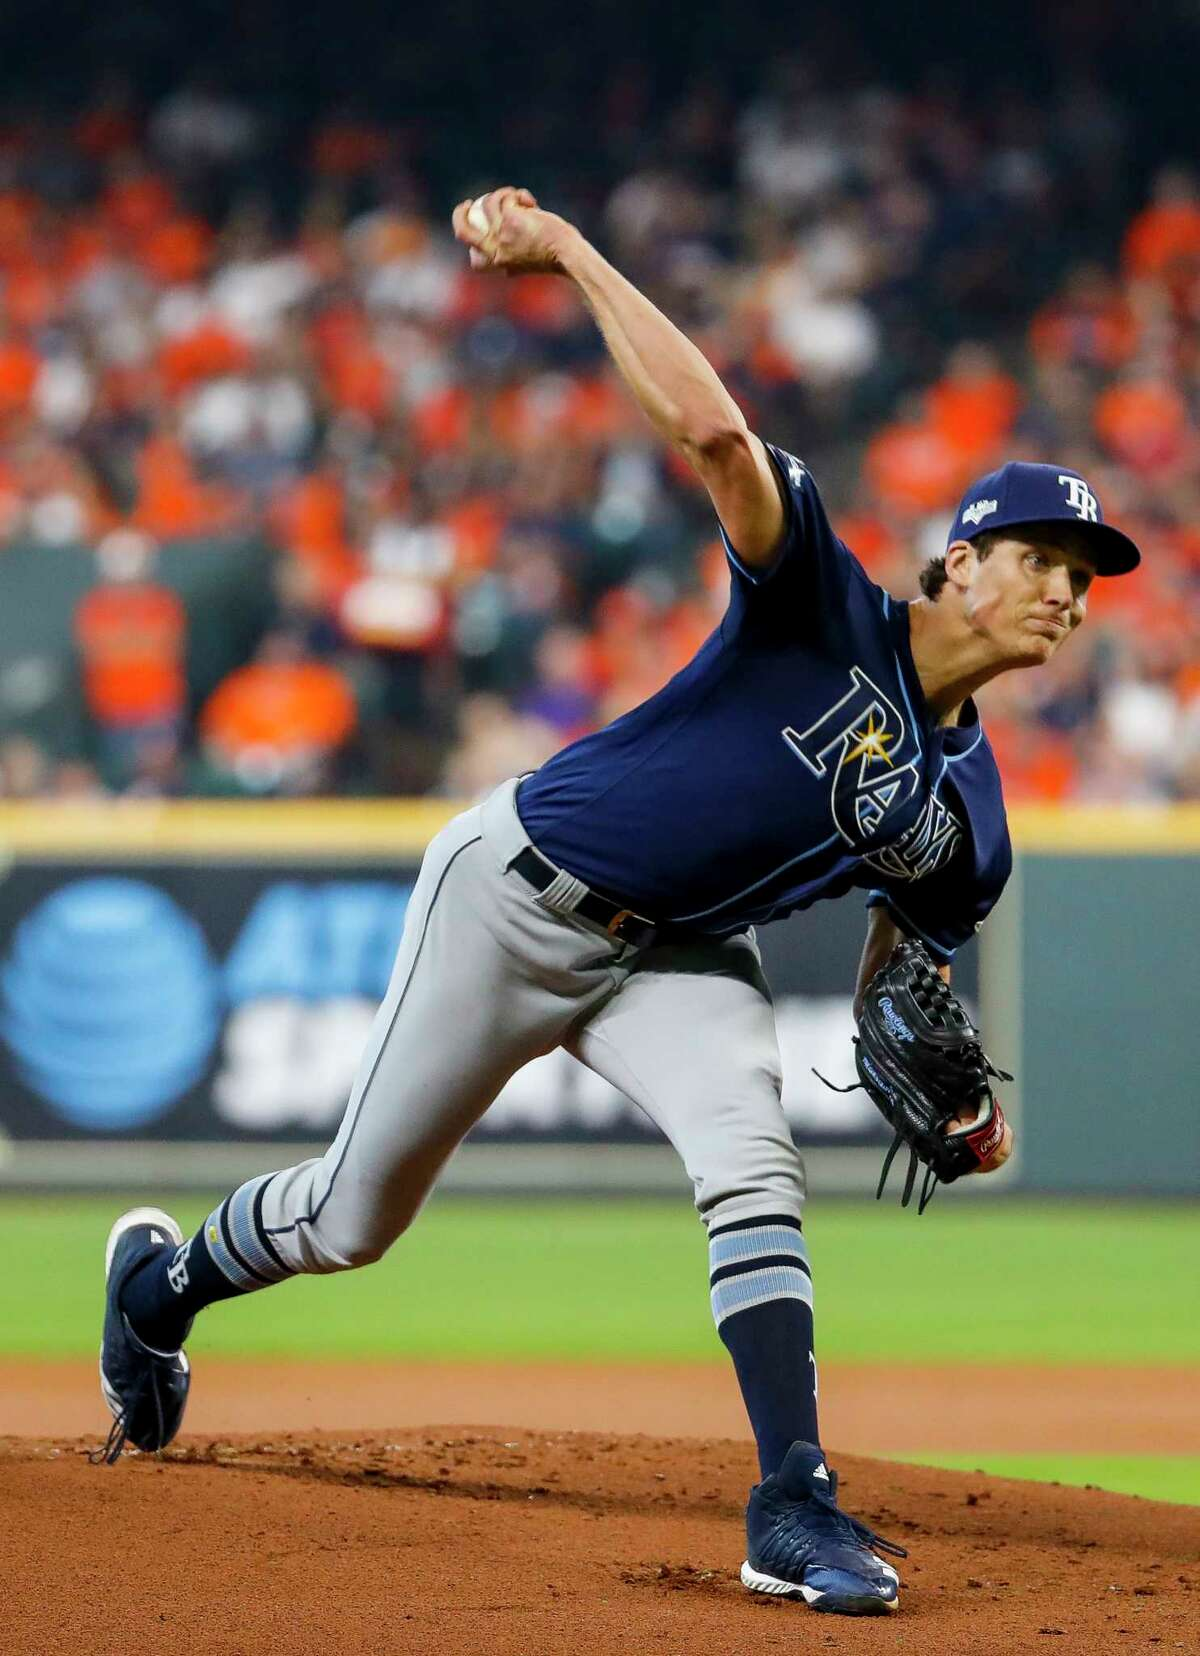 Tampa Bay Rays starting pitcher Tyler Glasnow (20) throw the ball against the Houston Astros during the first inning of Game 1 of the American League Division Series at Minute Maid Park on Friday, Oct. 4, 2019, in Houston.